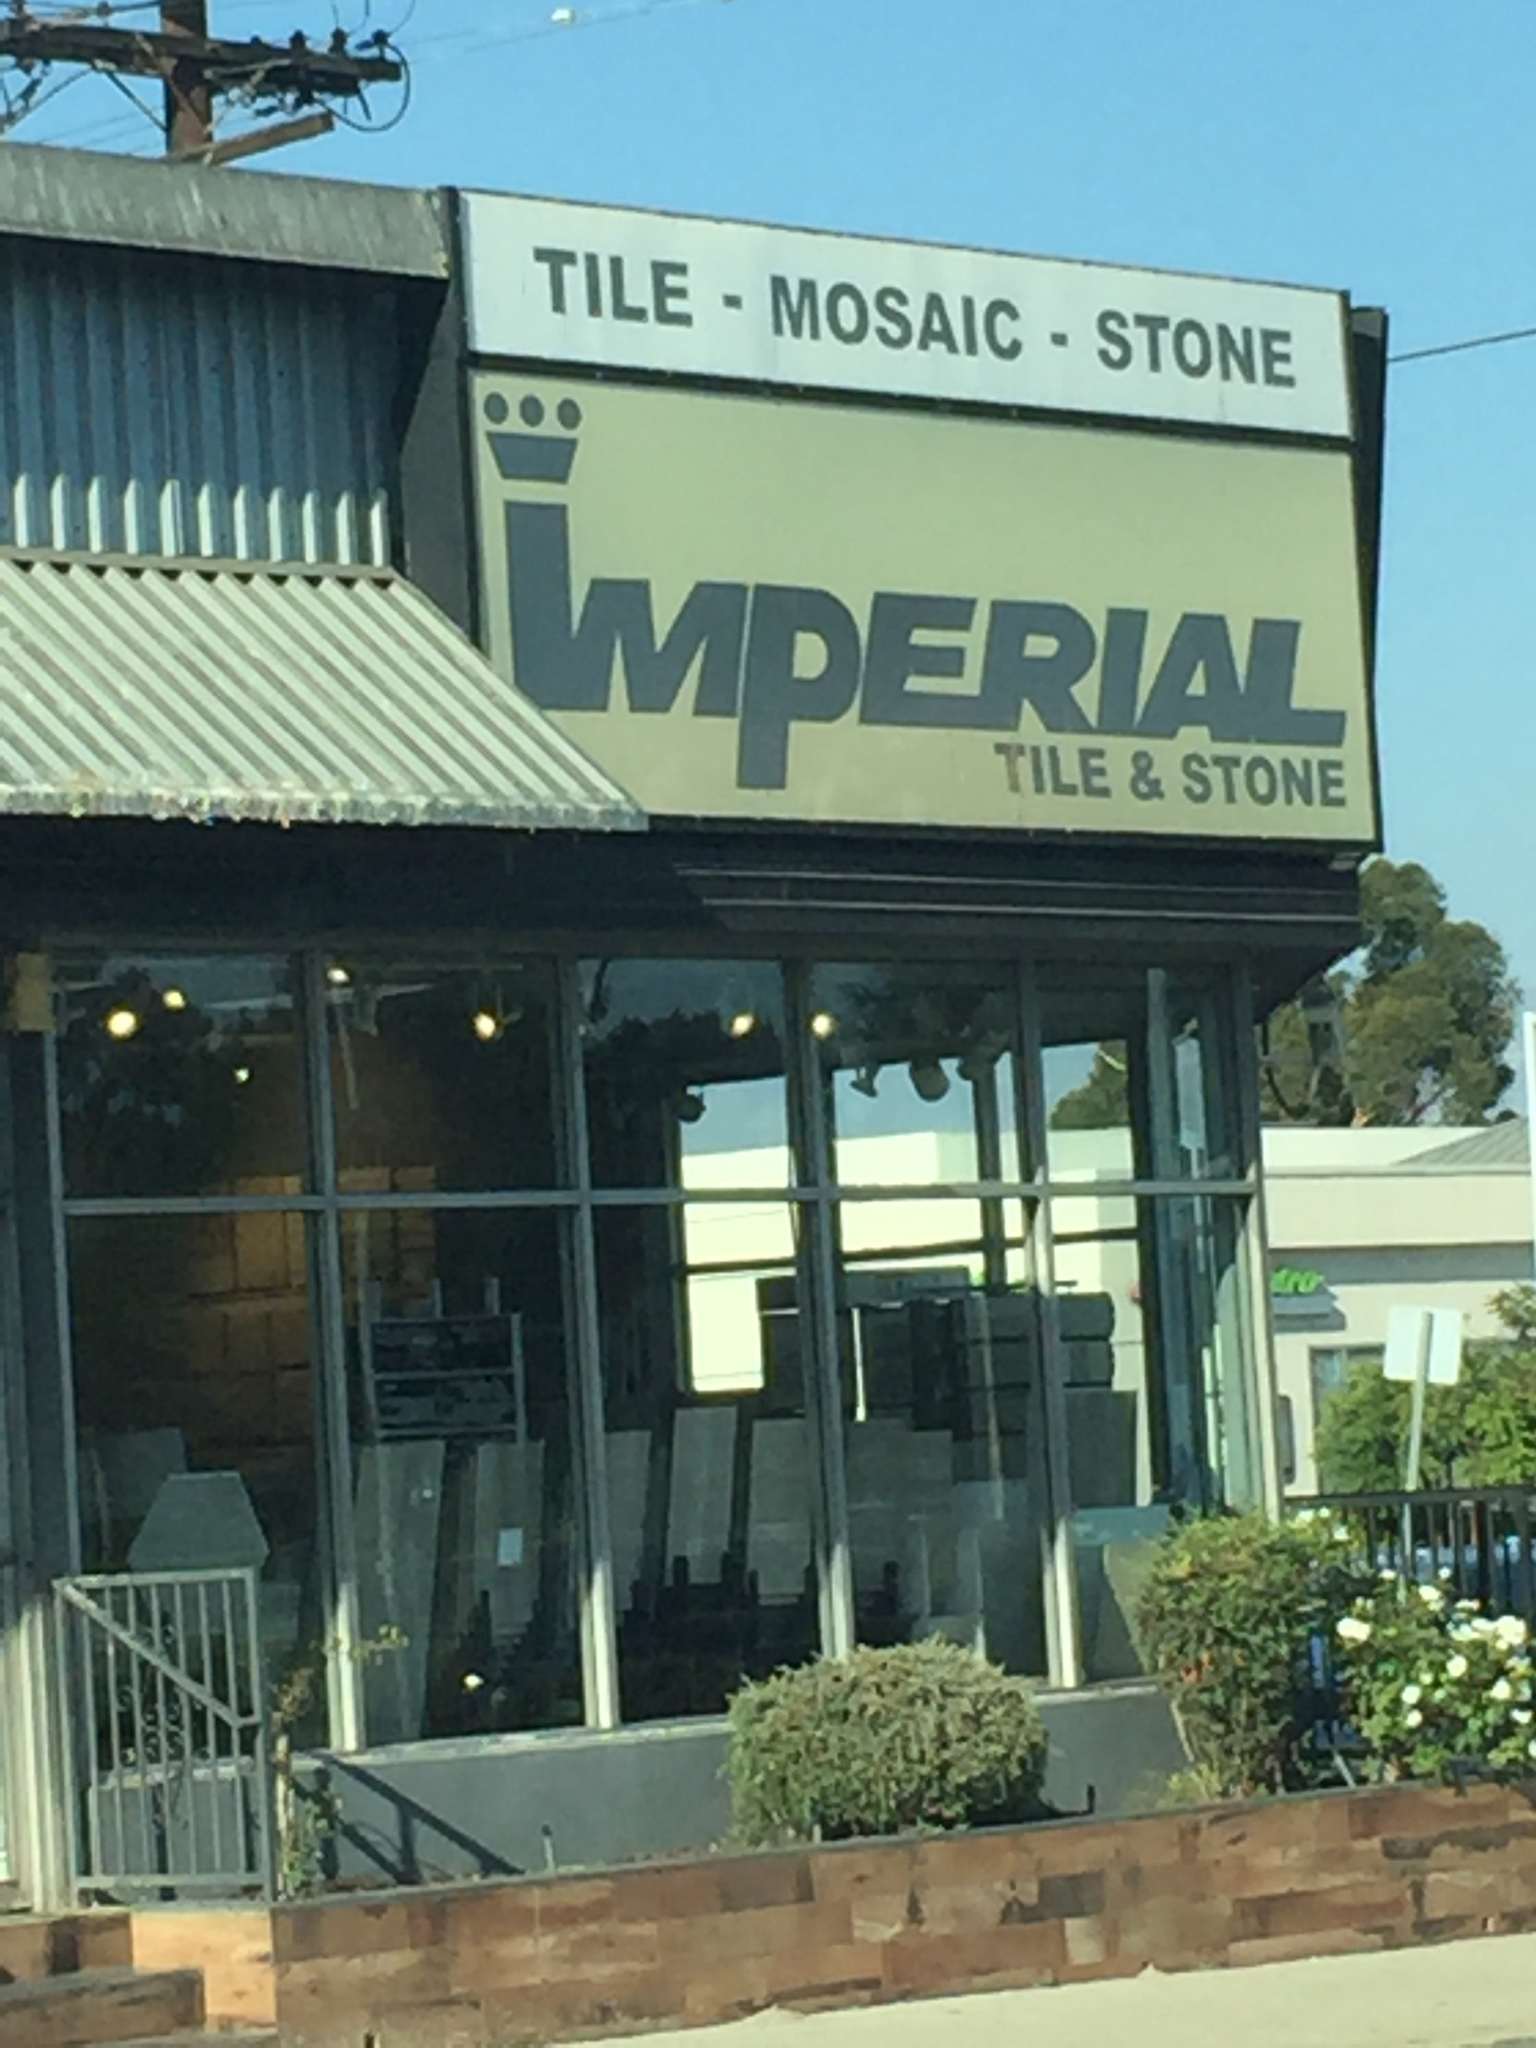 Imperial Tile Stone 7211 Whitsett Ave North Hollywood Ca